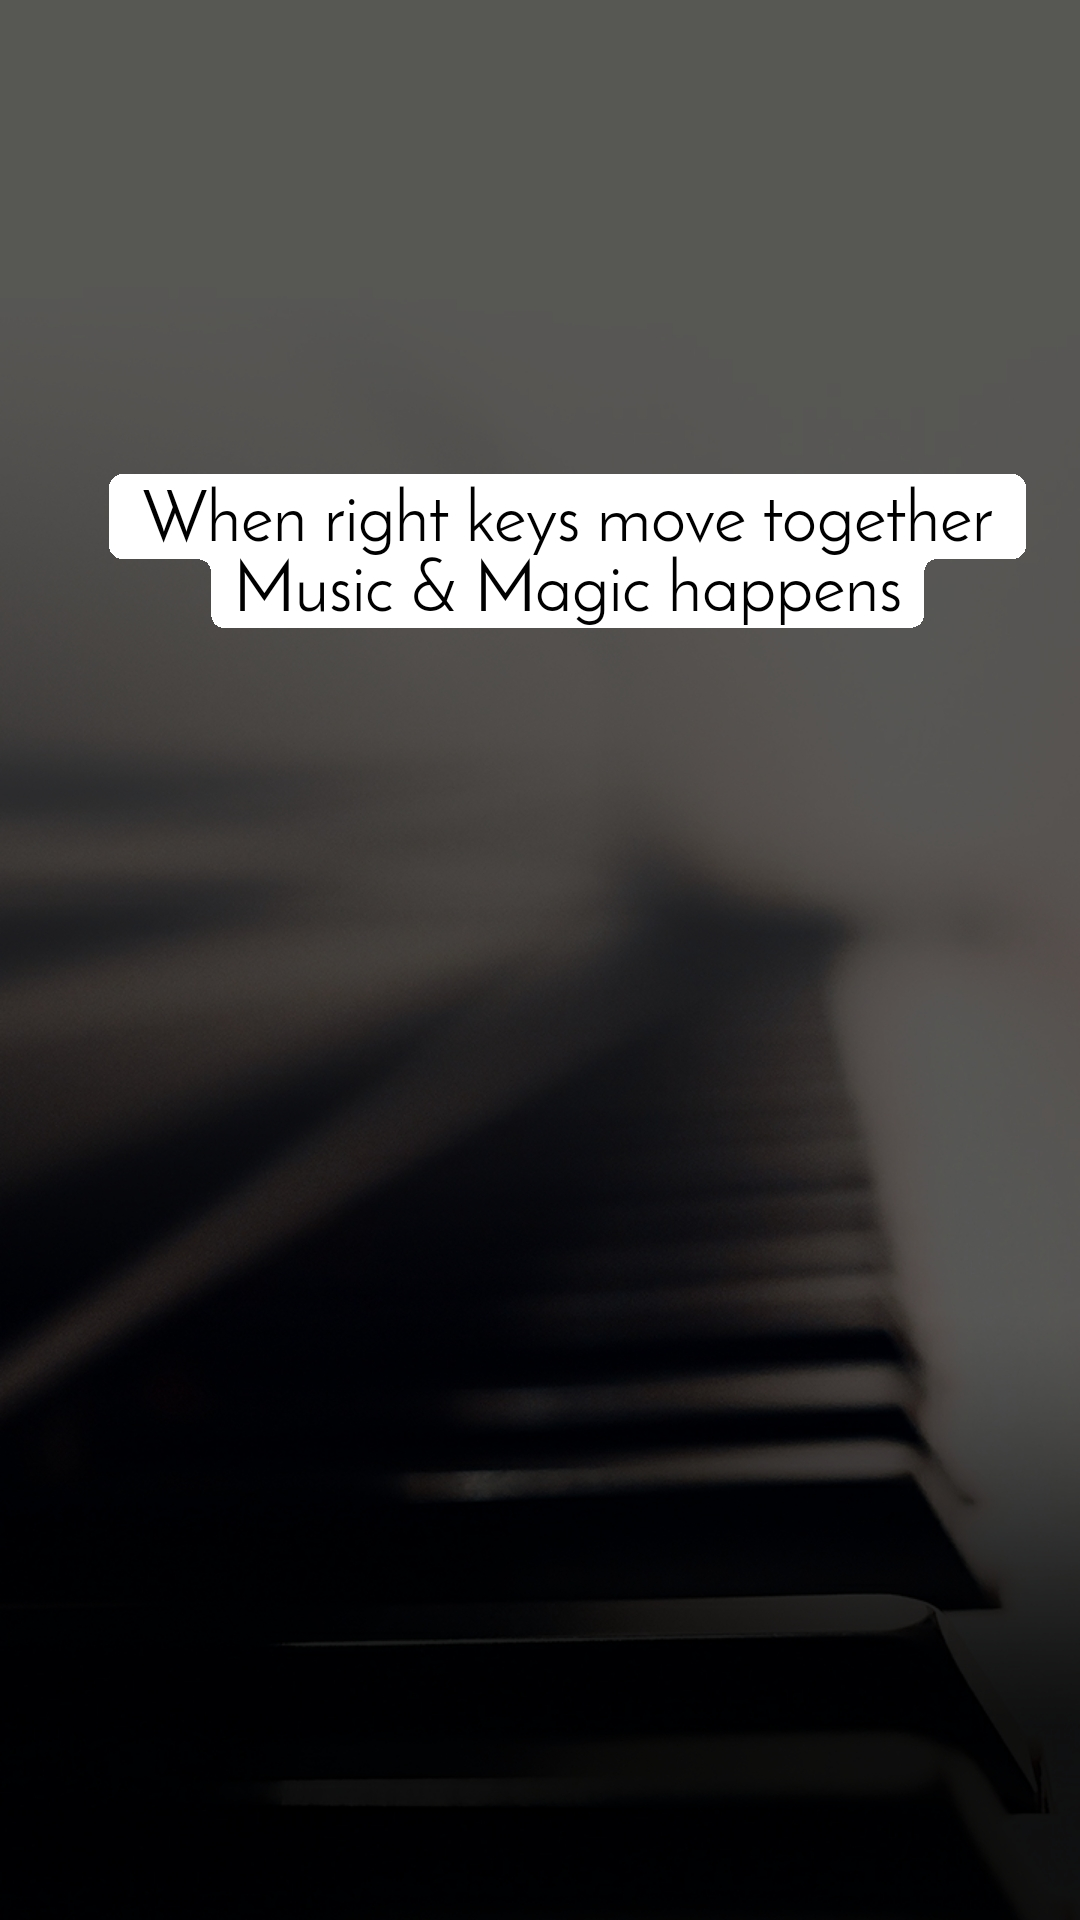 When right keys move together Music & Magic happens